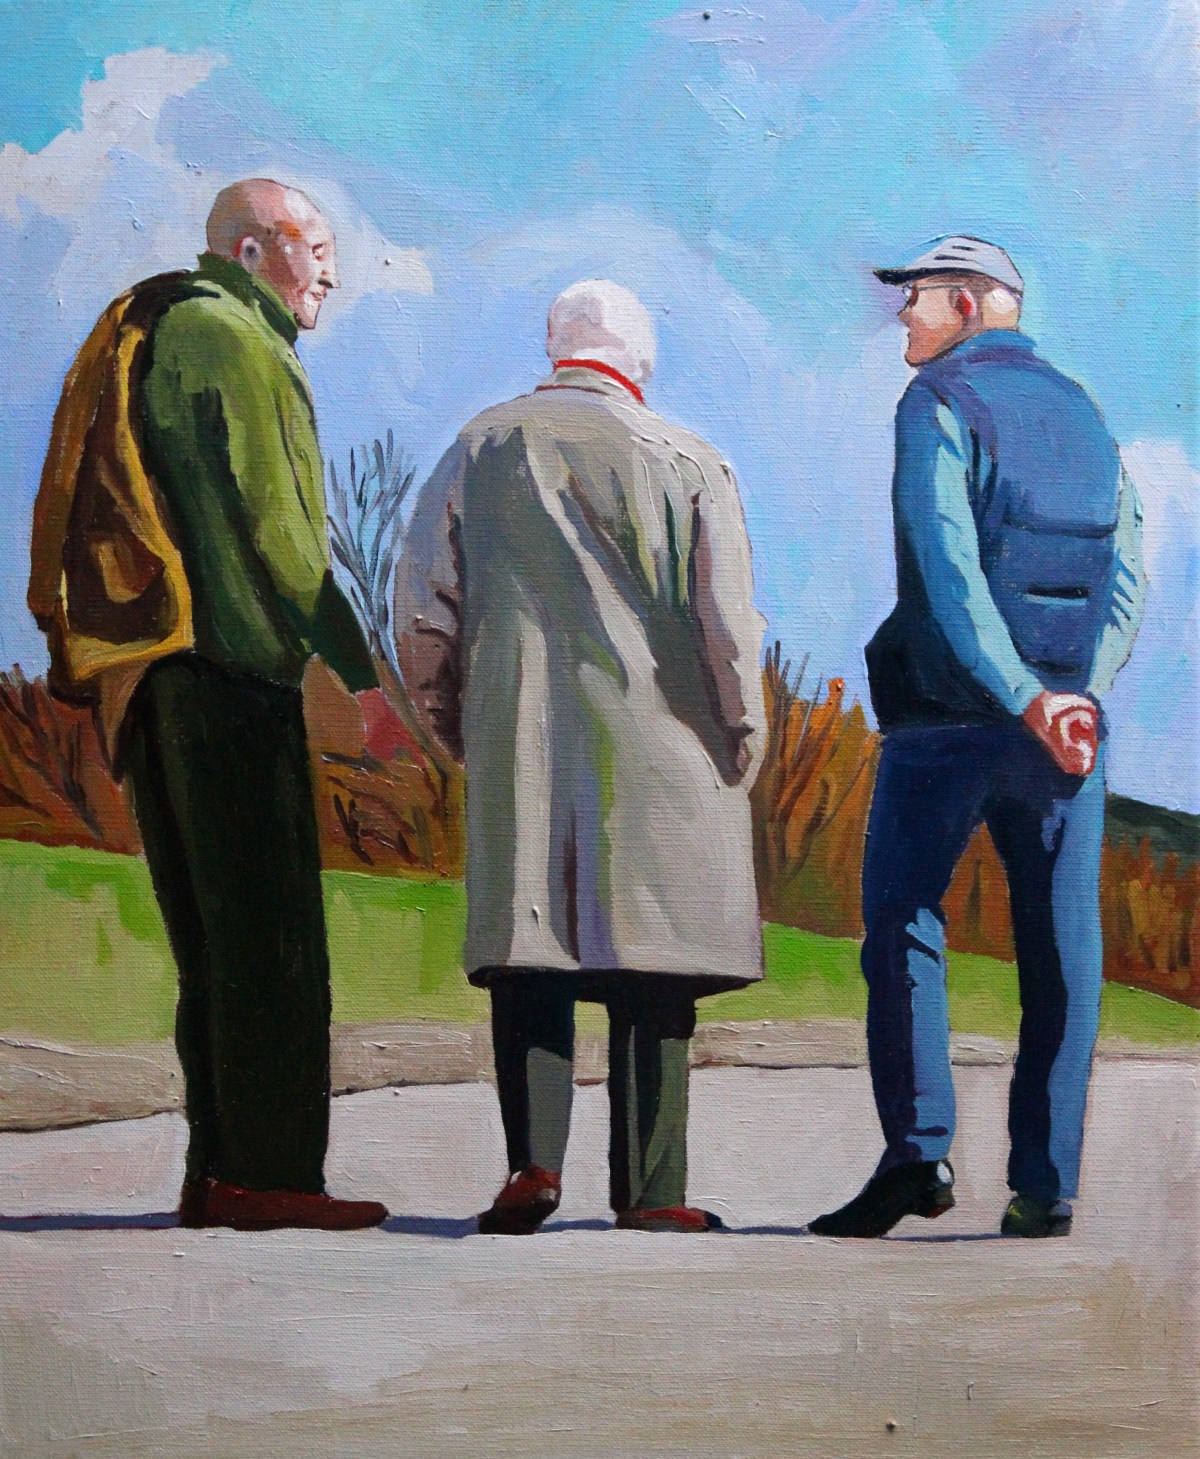 Painting of old men in the sunshine